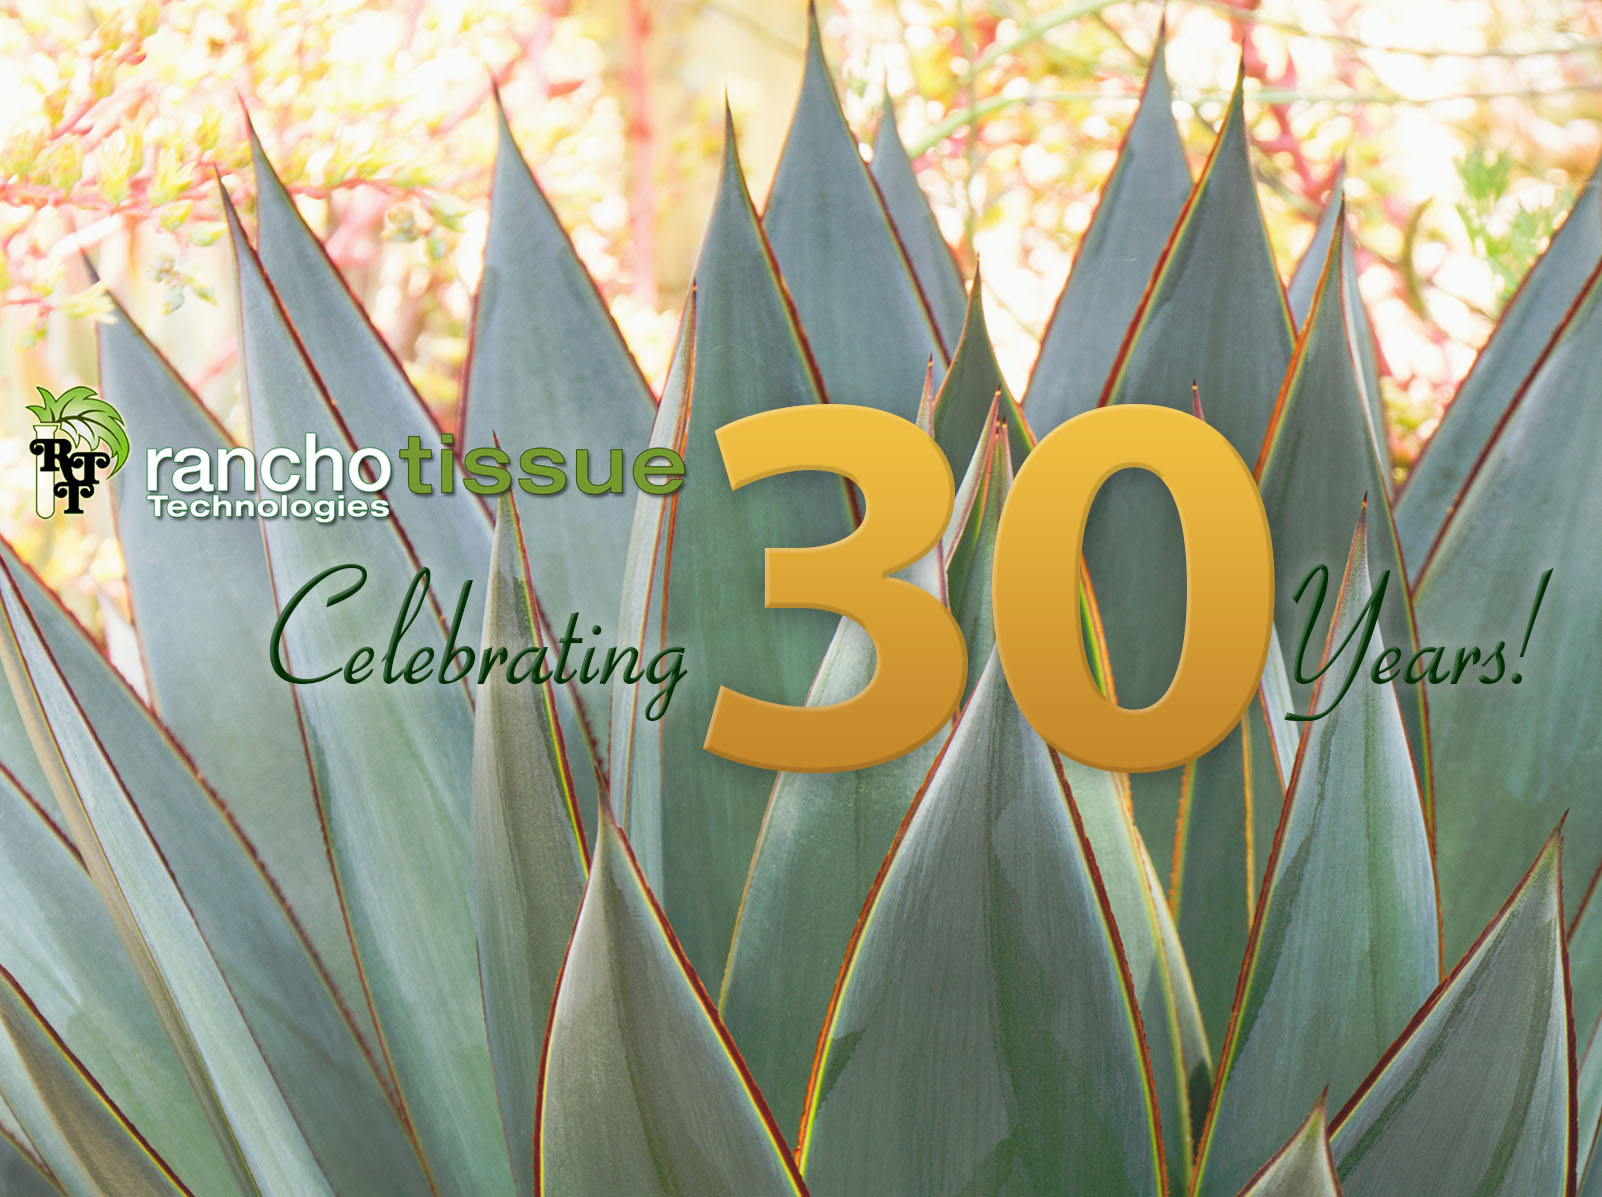 Ranchot Tissue Celebrating 30 Years!